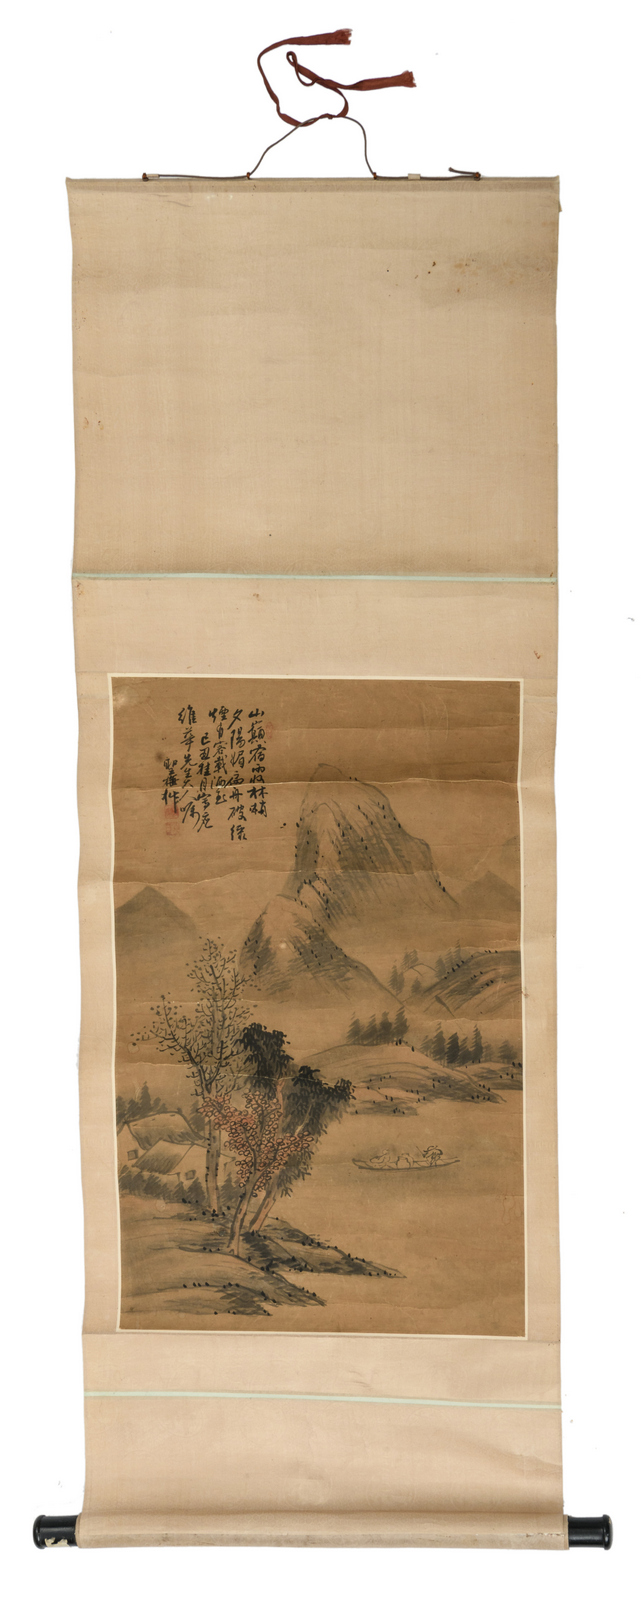 A Chinese scroll, watercolour on paper, depicting figures in a mountainous river landscape, with a calligraphic text, signed, 40,5 x 66,5 (without mount) -57 x 136,5 cm (with mount)